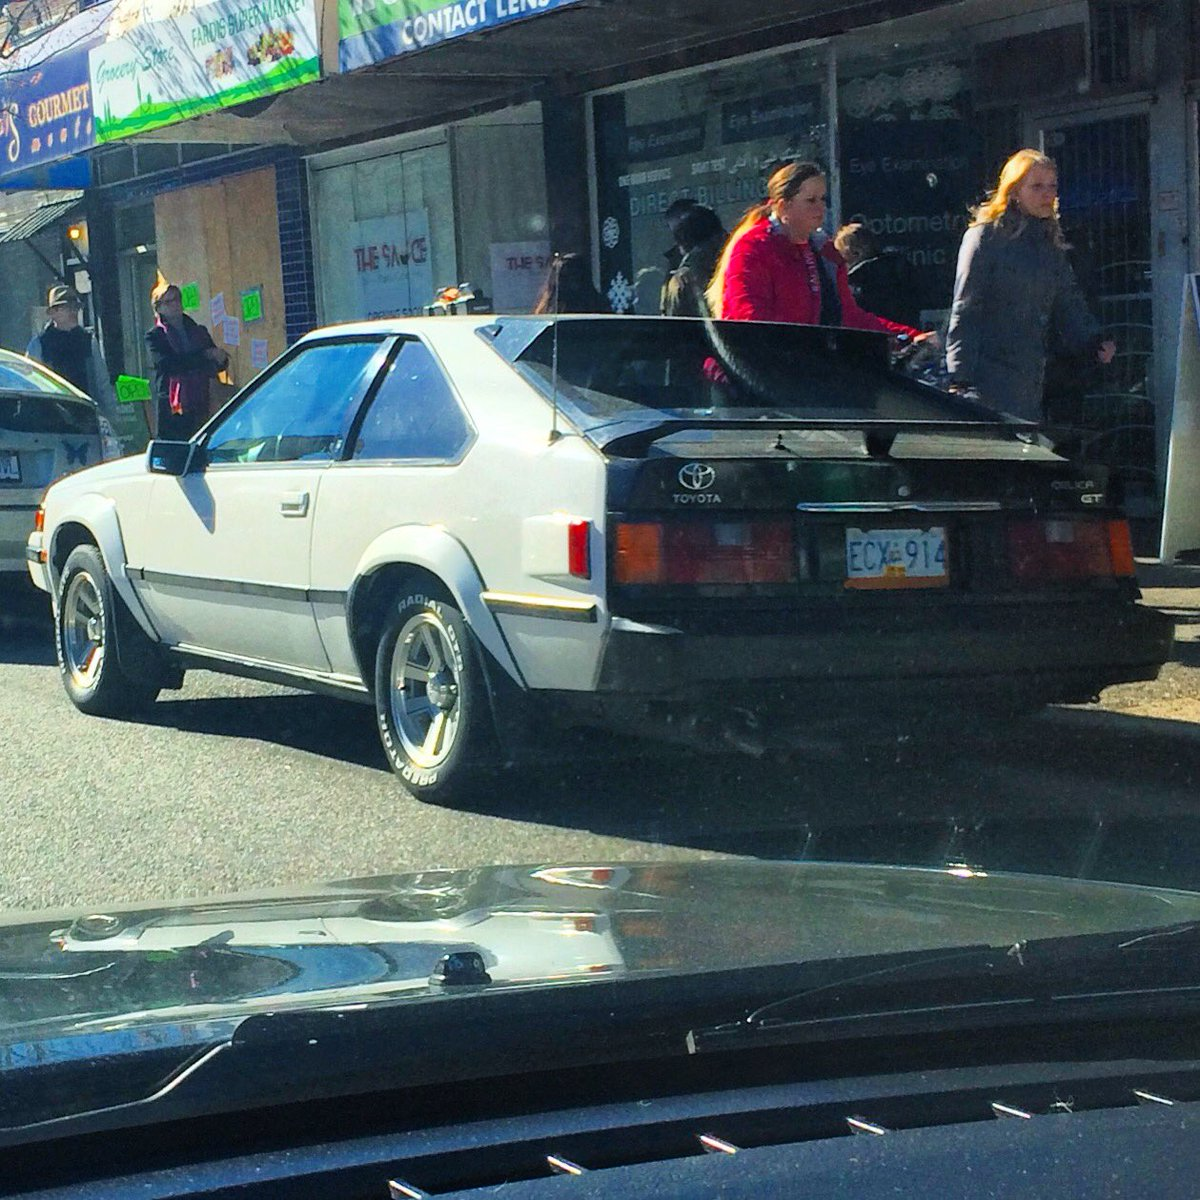 RT @miatatweets: spotted this clean 1985 TOYOTA Celica #celicagt #toyotacelica #toyotacelicagt https://t.co/GzlD6n7Q63